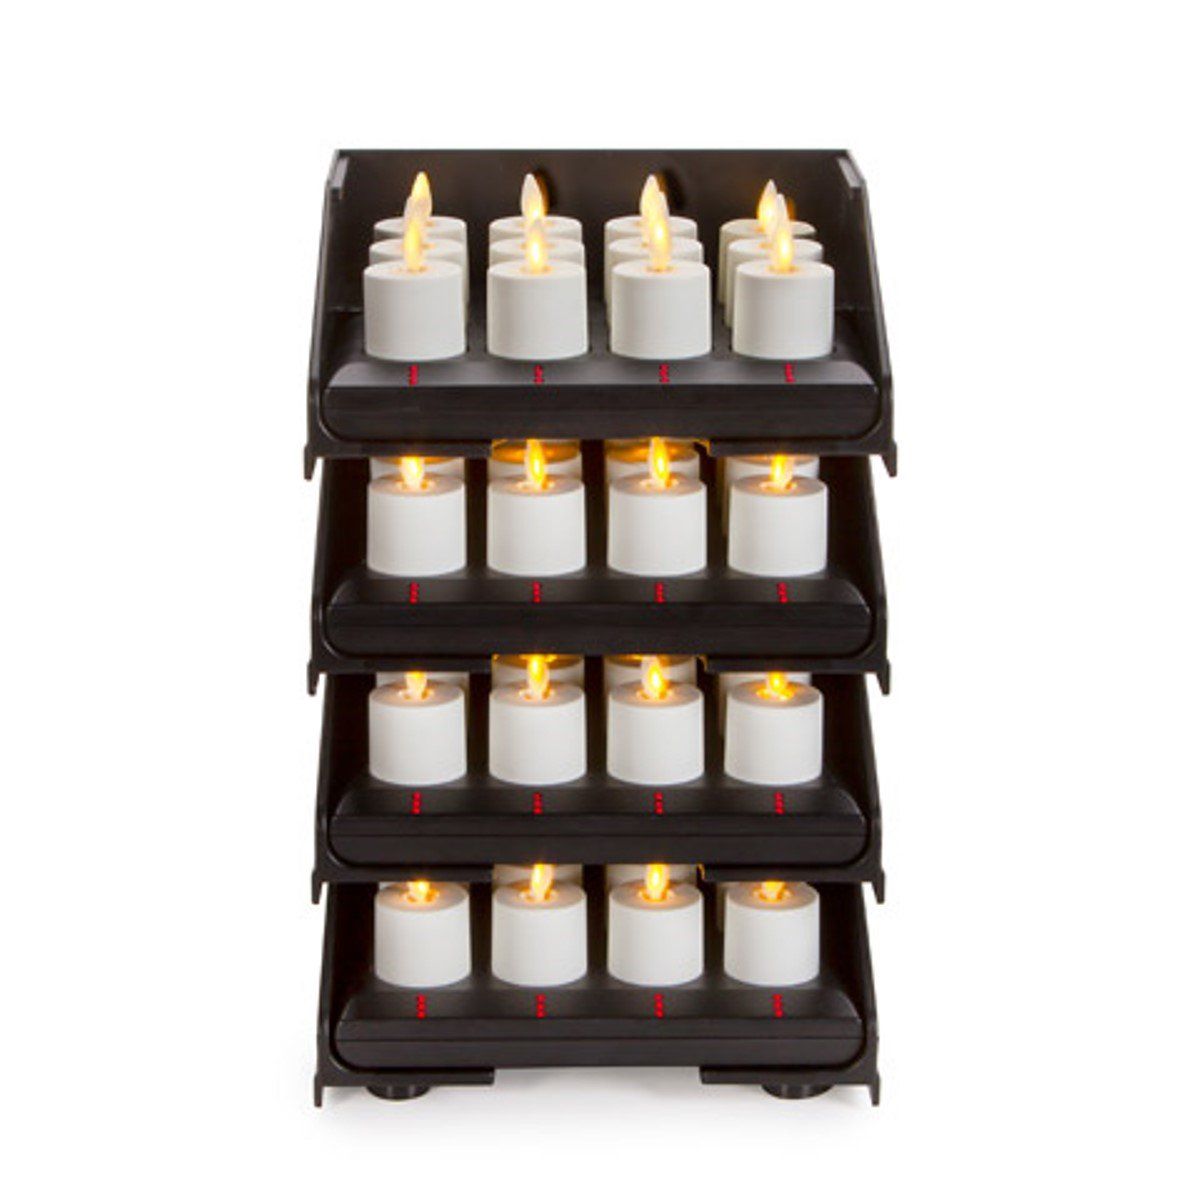 48pc Luminara Rechargeable Flameless Tea Lights w/ Charging Base: 48 Rechargeable Tea Light Votive Candles, Intelligent Charging Base Tower, Sliding Trays, Weddings, Bridal, Restaurants, Receptions